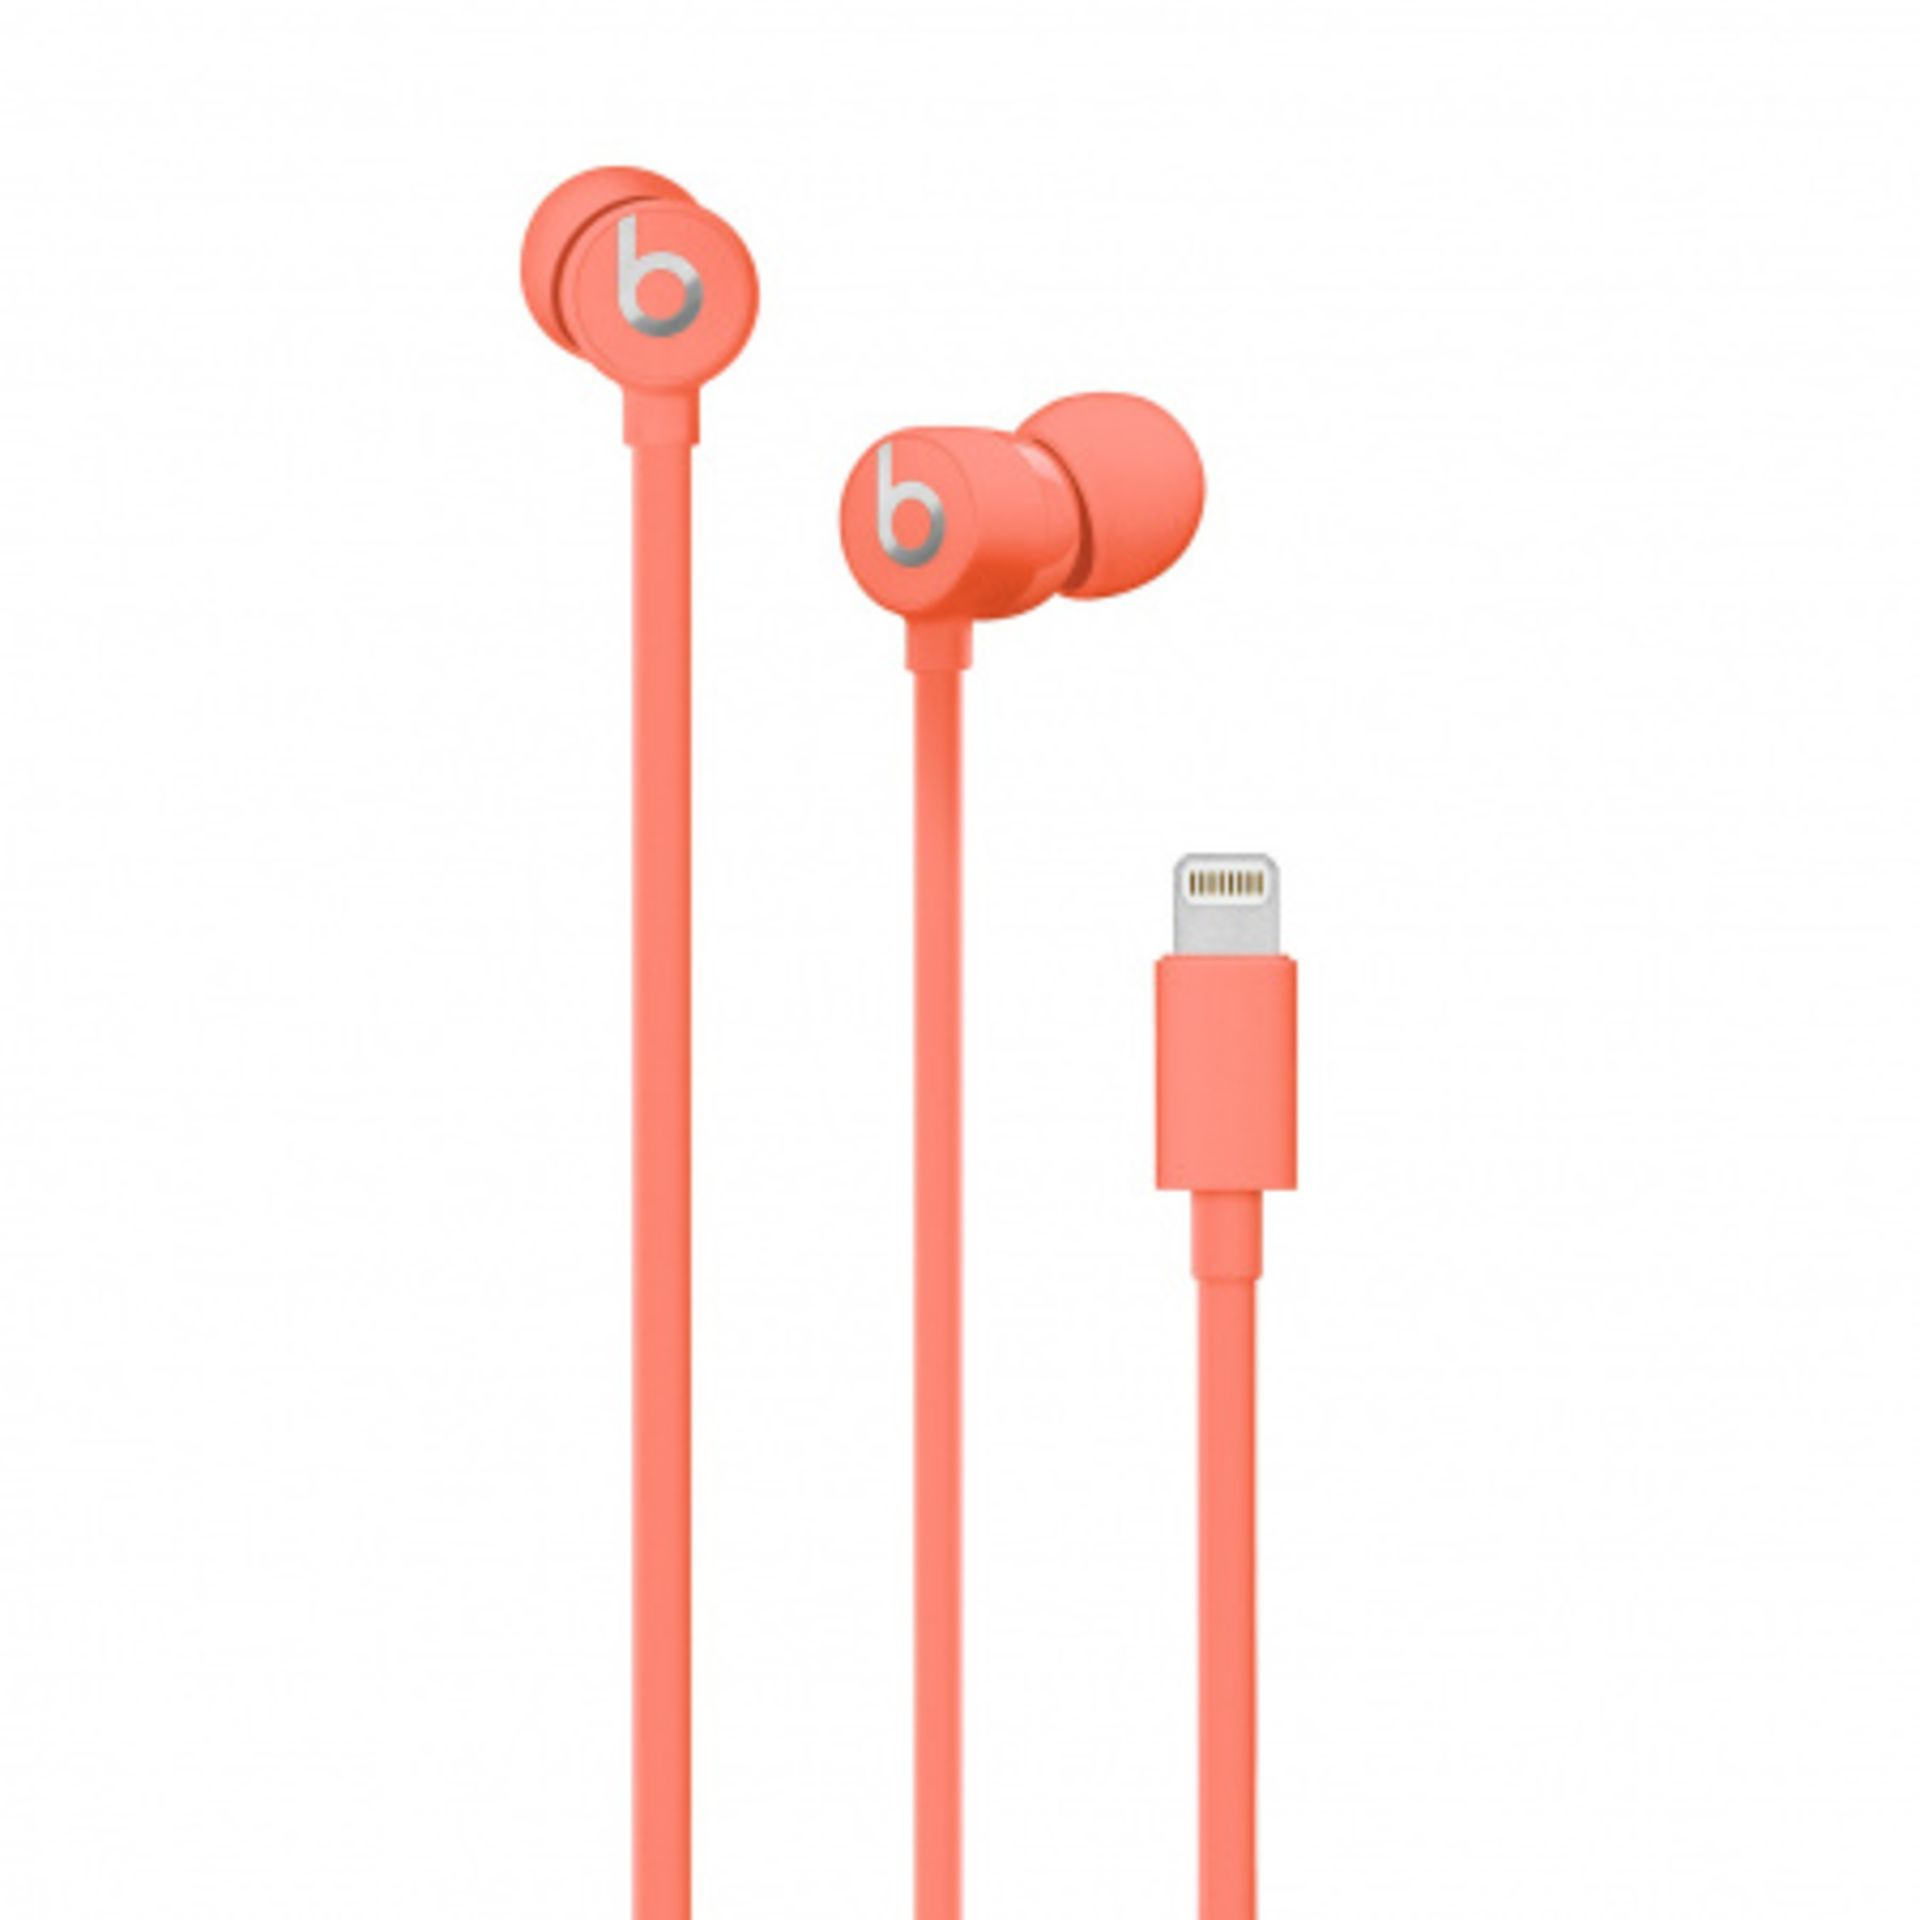 + VAT Brand New UrBeats 3 Earphones With Lightning Connector - Coral - Ergonomic Design - High